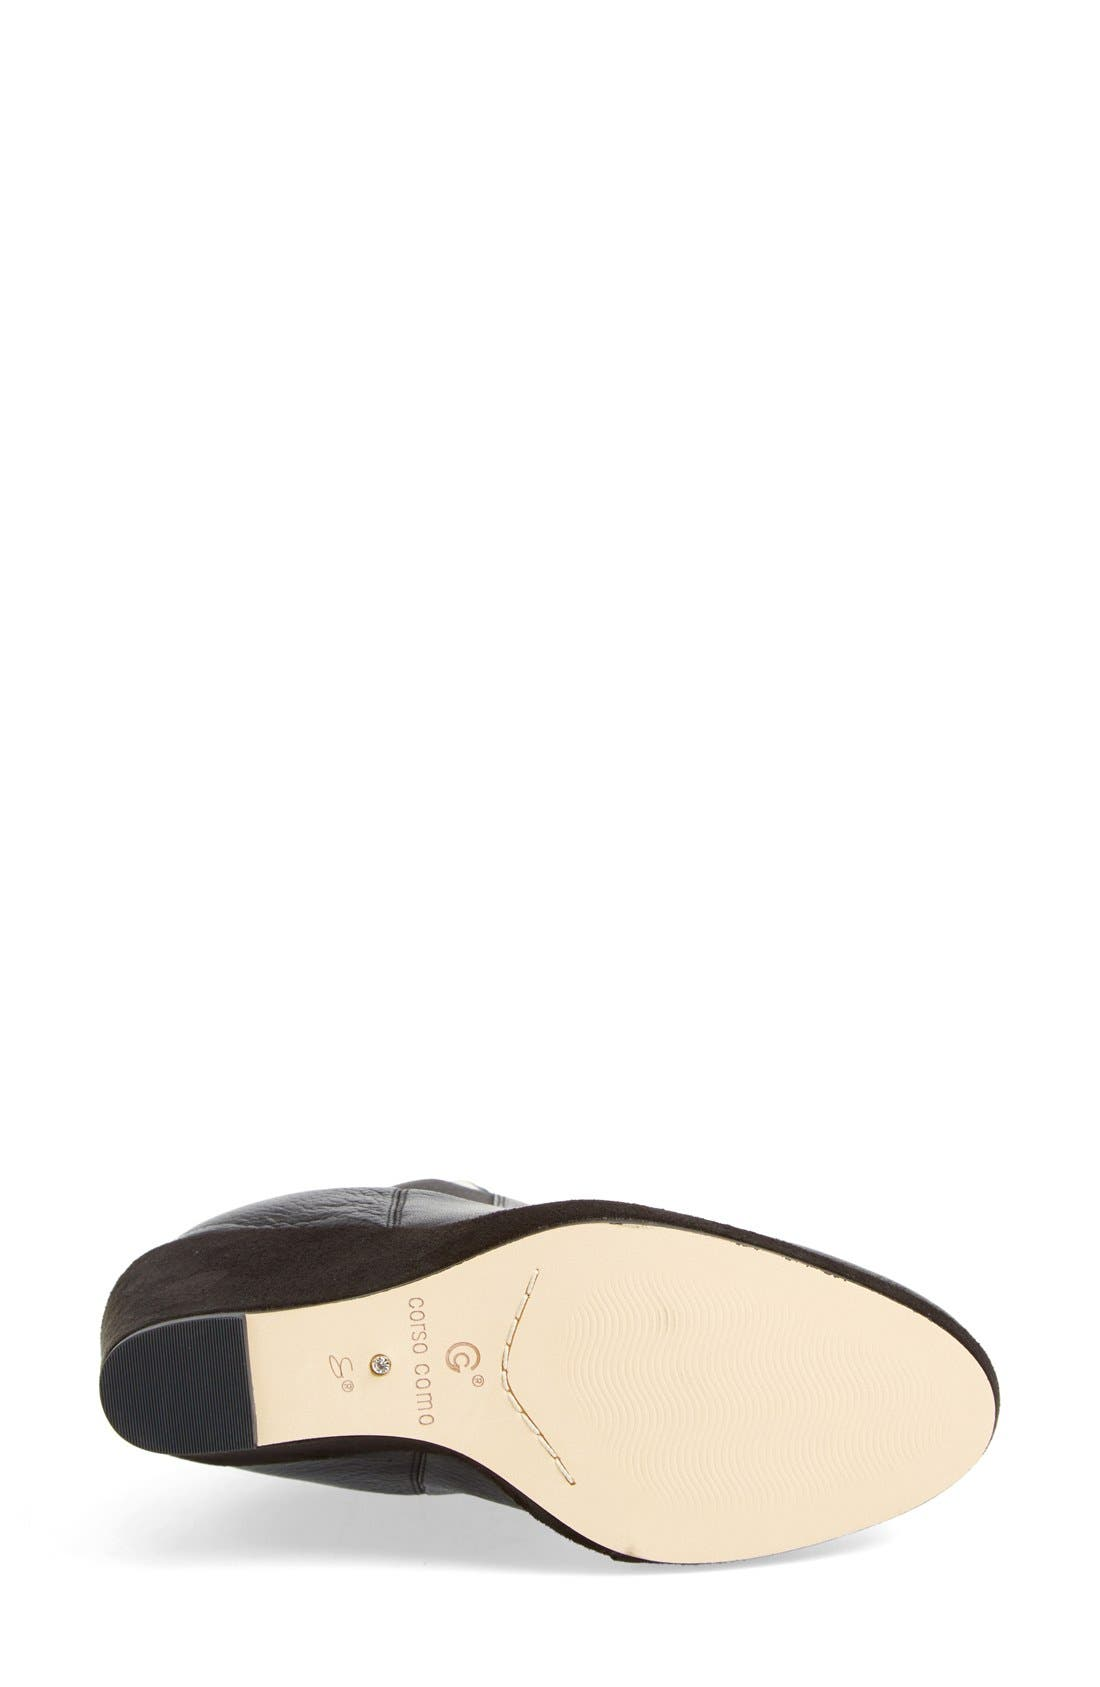 CORSO COMO,                             Corso Como 'Coast' Wedge Bootie,                             Alternate thumbnail 3, color,                             001